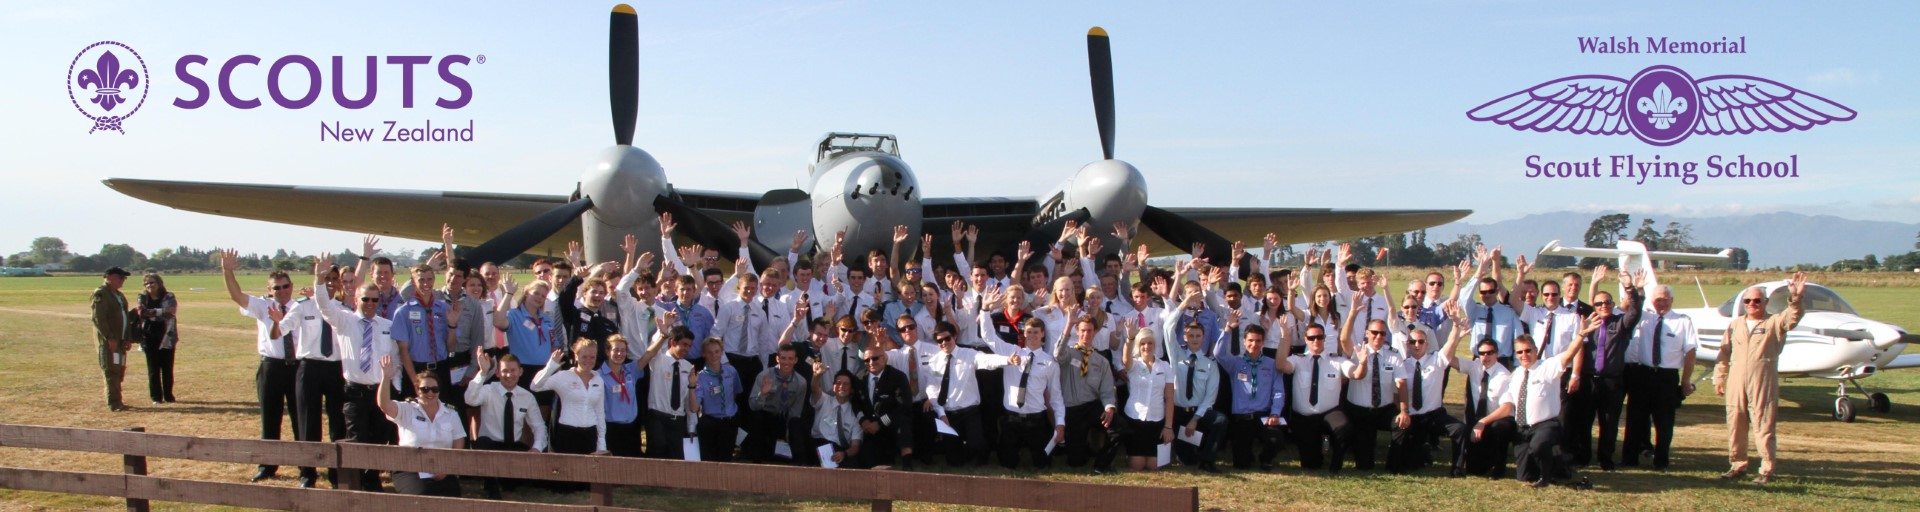 54th Walsh Memorial Scout Flying School 2020 - SCOUTS New Zealand